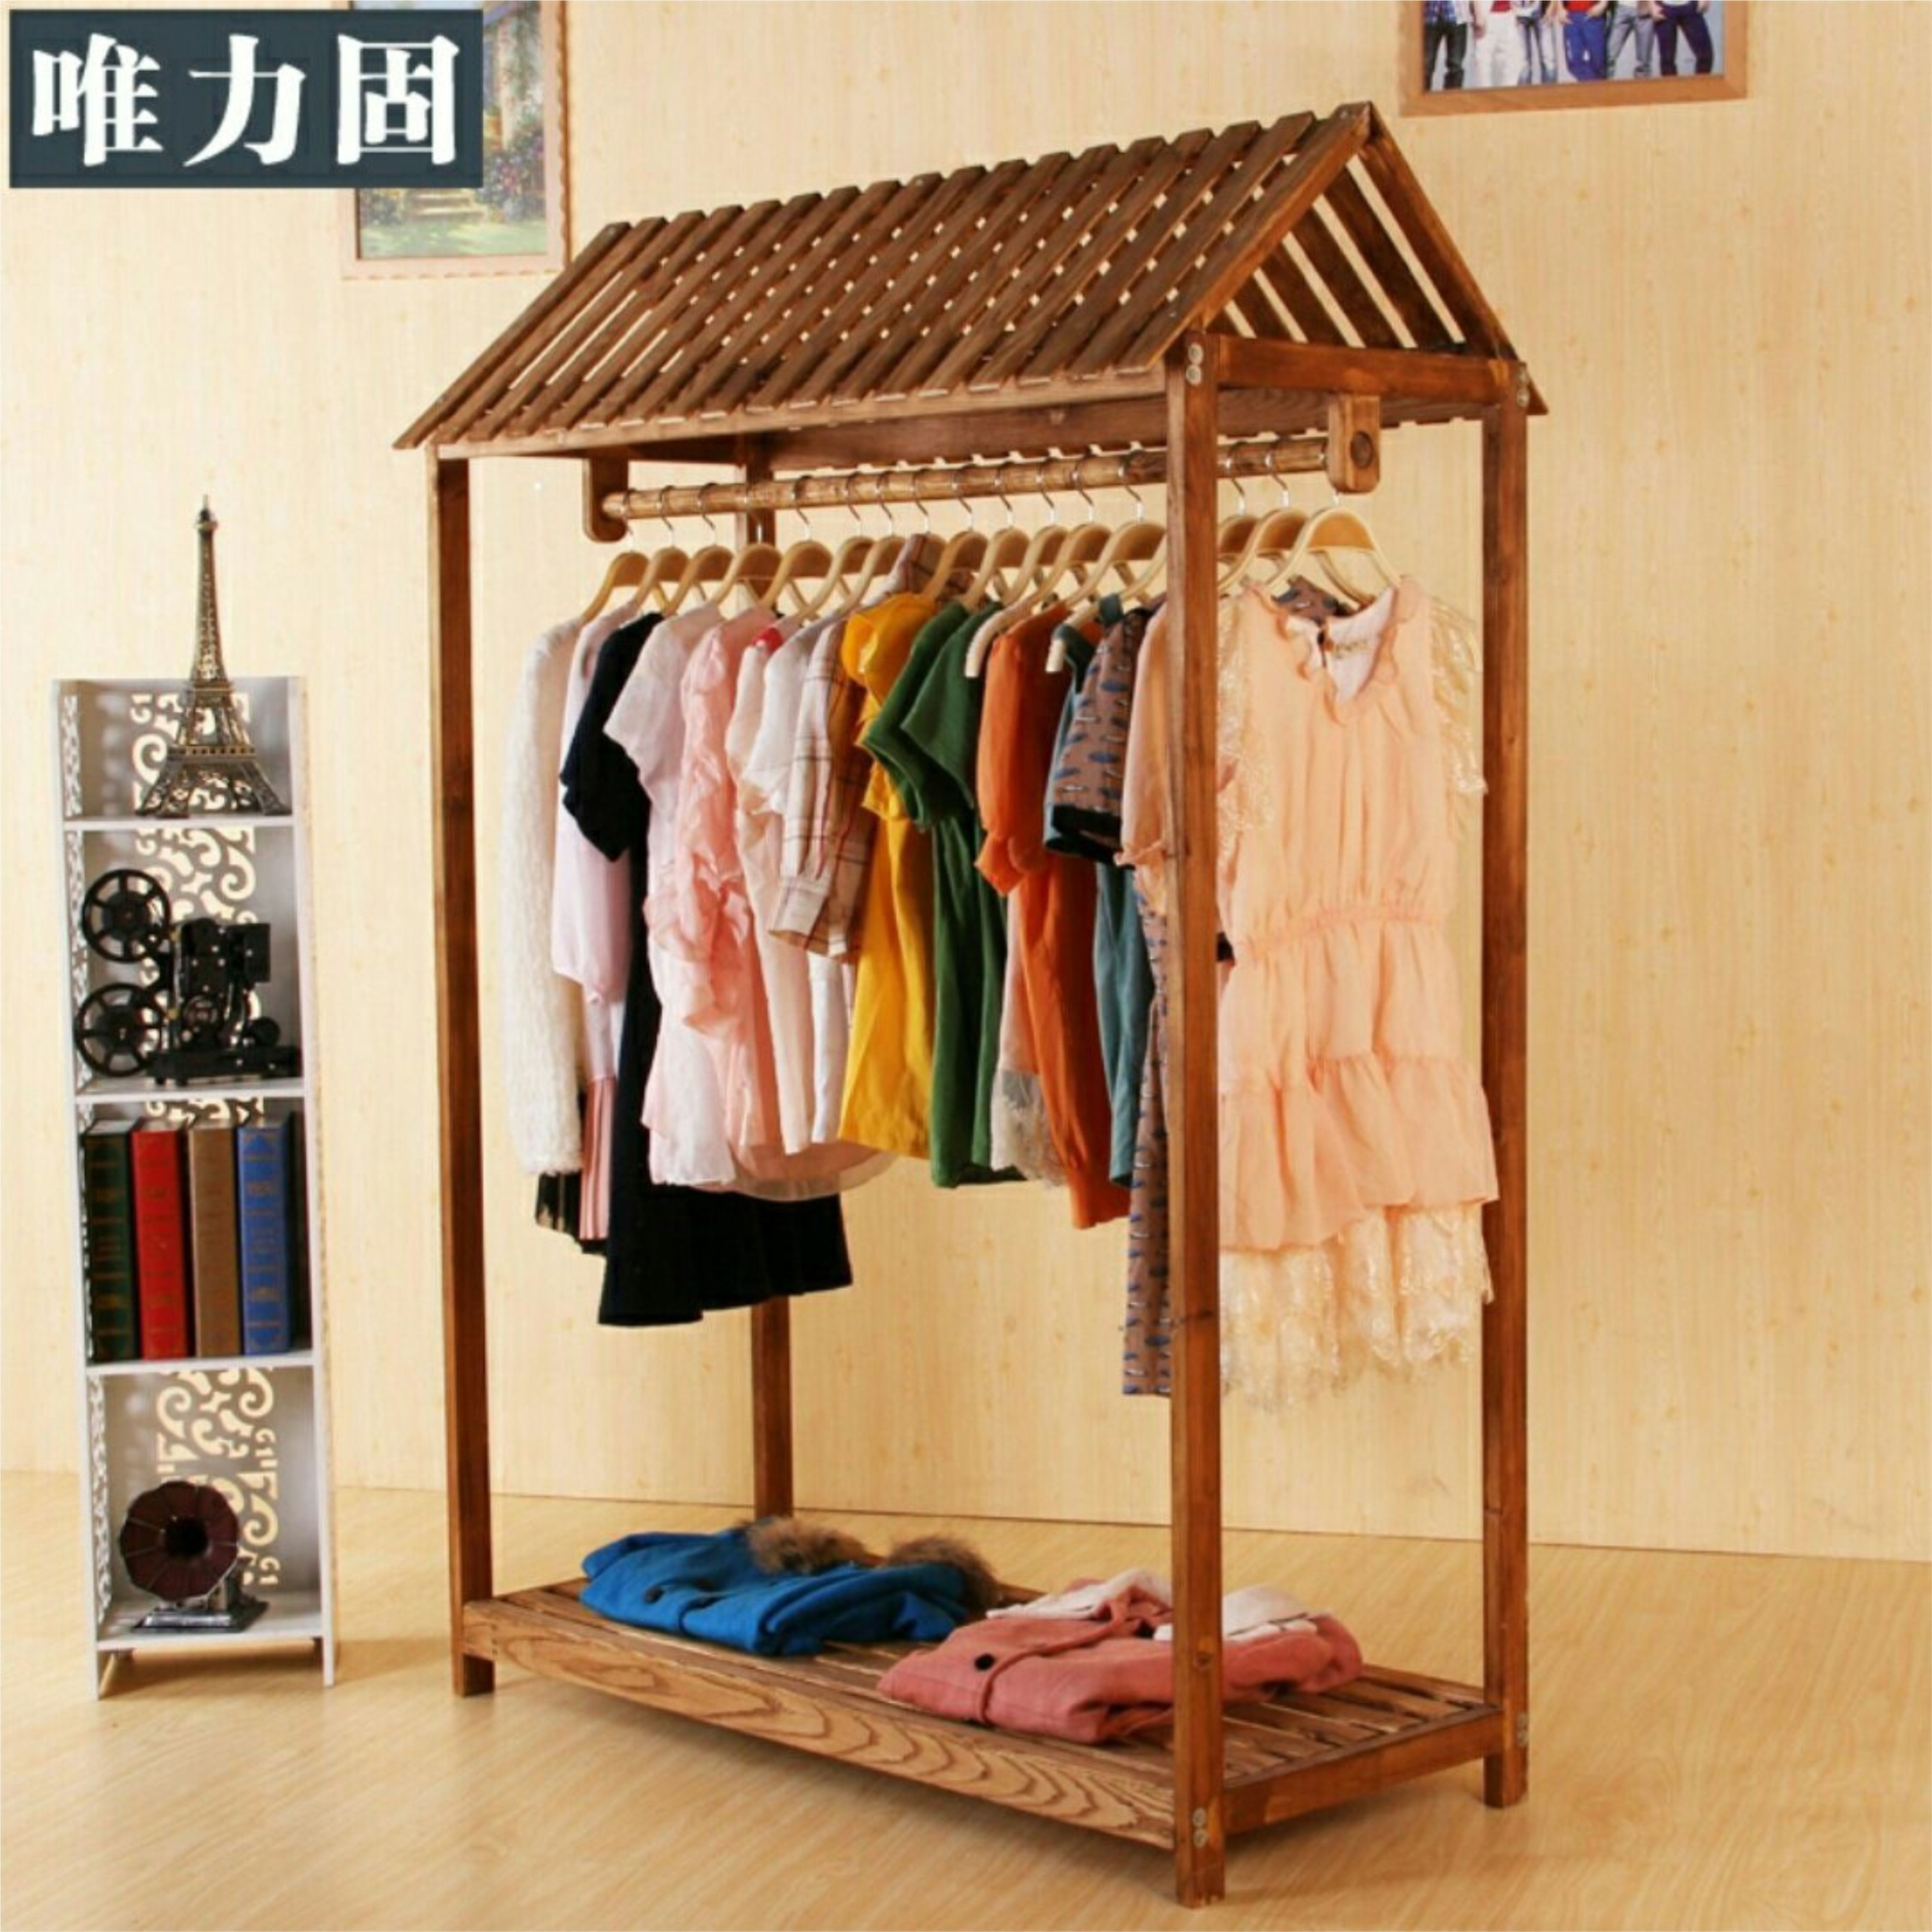 Clothes Rack Free Vector